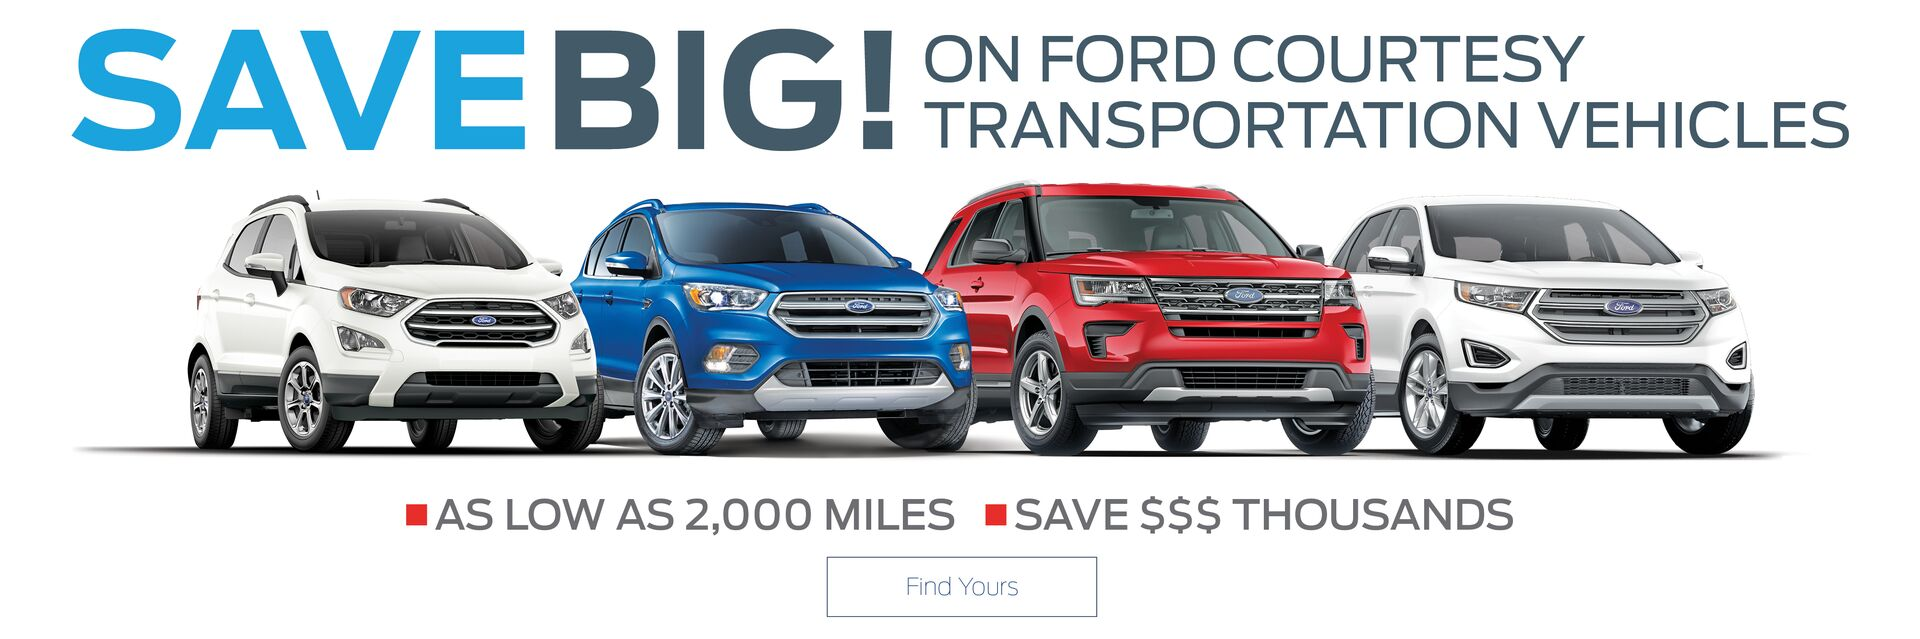 Save Big on Ford Courtesy Transportation Vehicles at Holiday Ford in Fond du Lac, WI